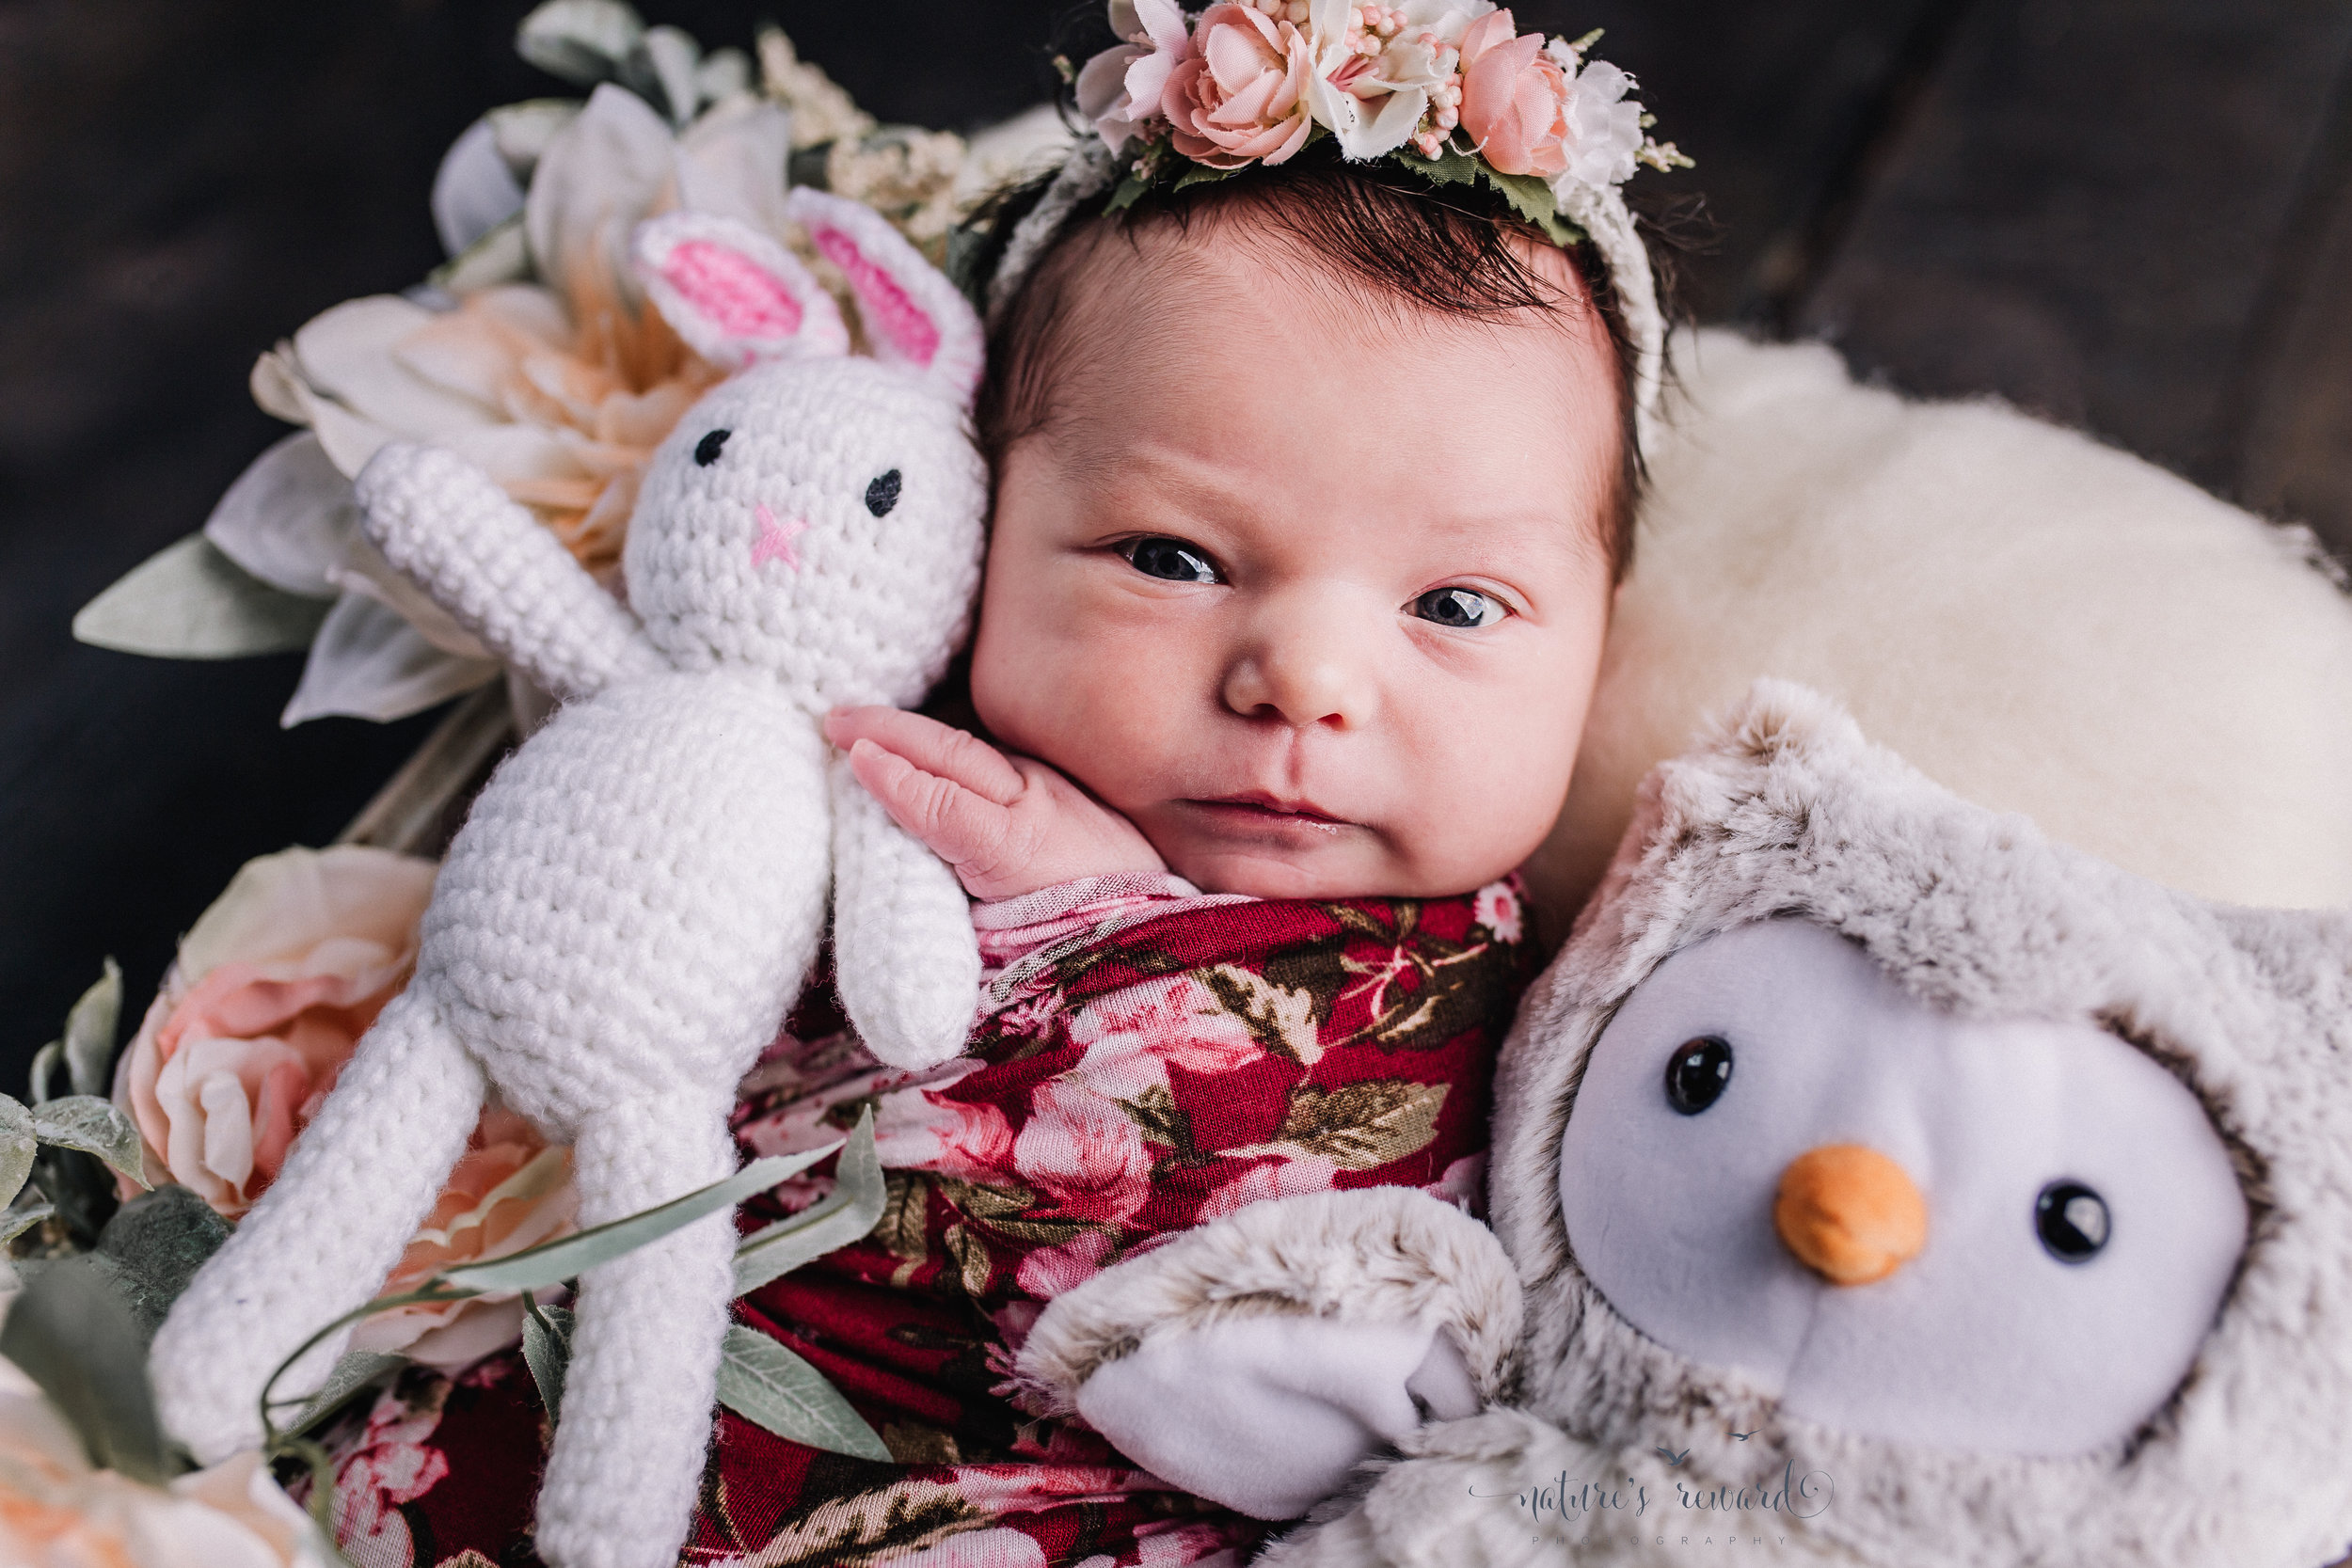 Newborn baby girl wrapped a red floral wrap wearing a flower crown while laying sweetly in a box with flowers and a her stuffed owl while making a stunning connection with the camera in the portrait photography session by Nature's Reward Photography